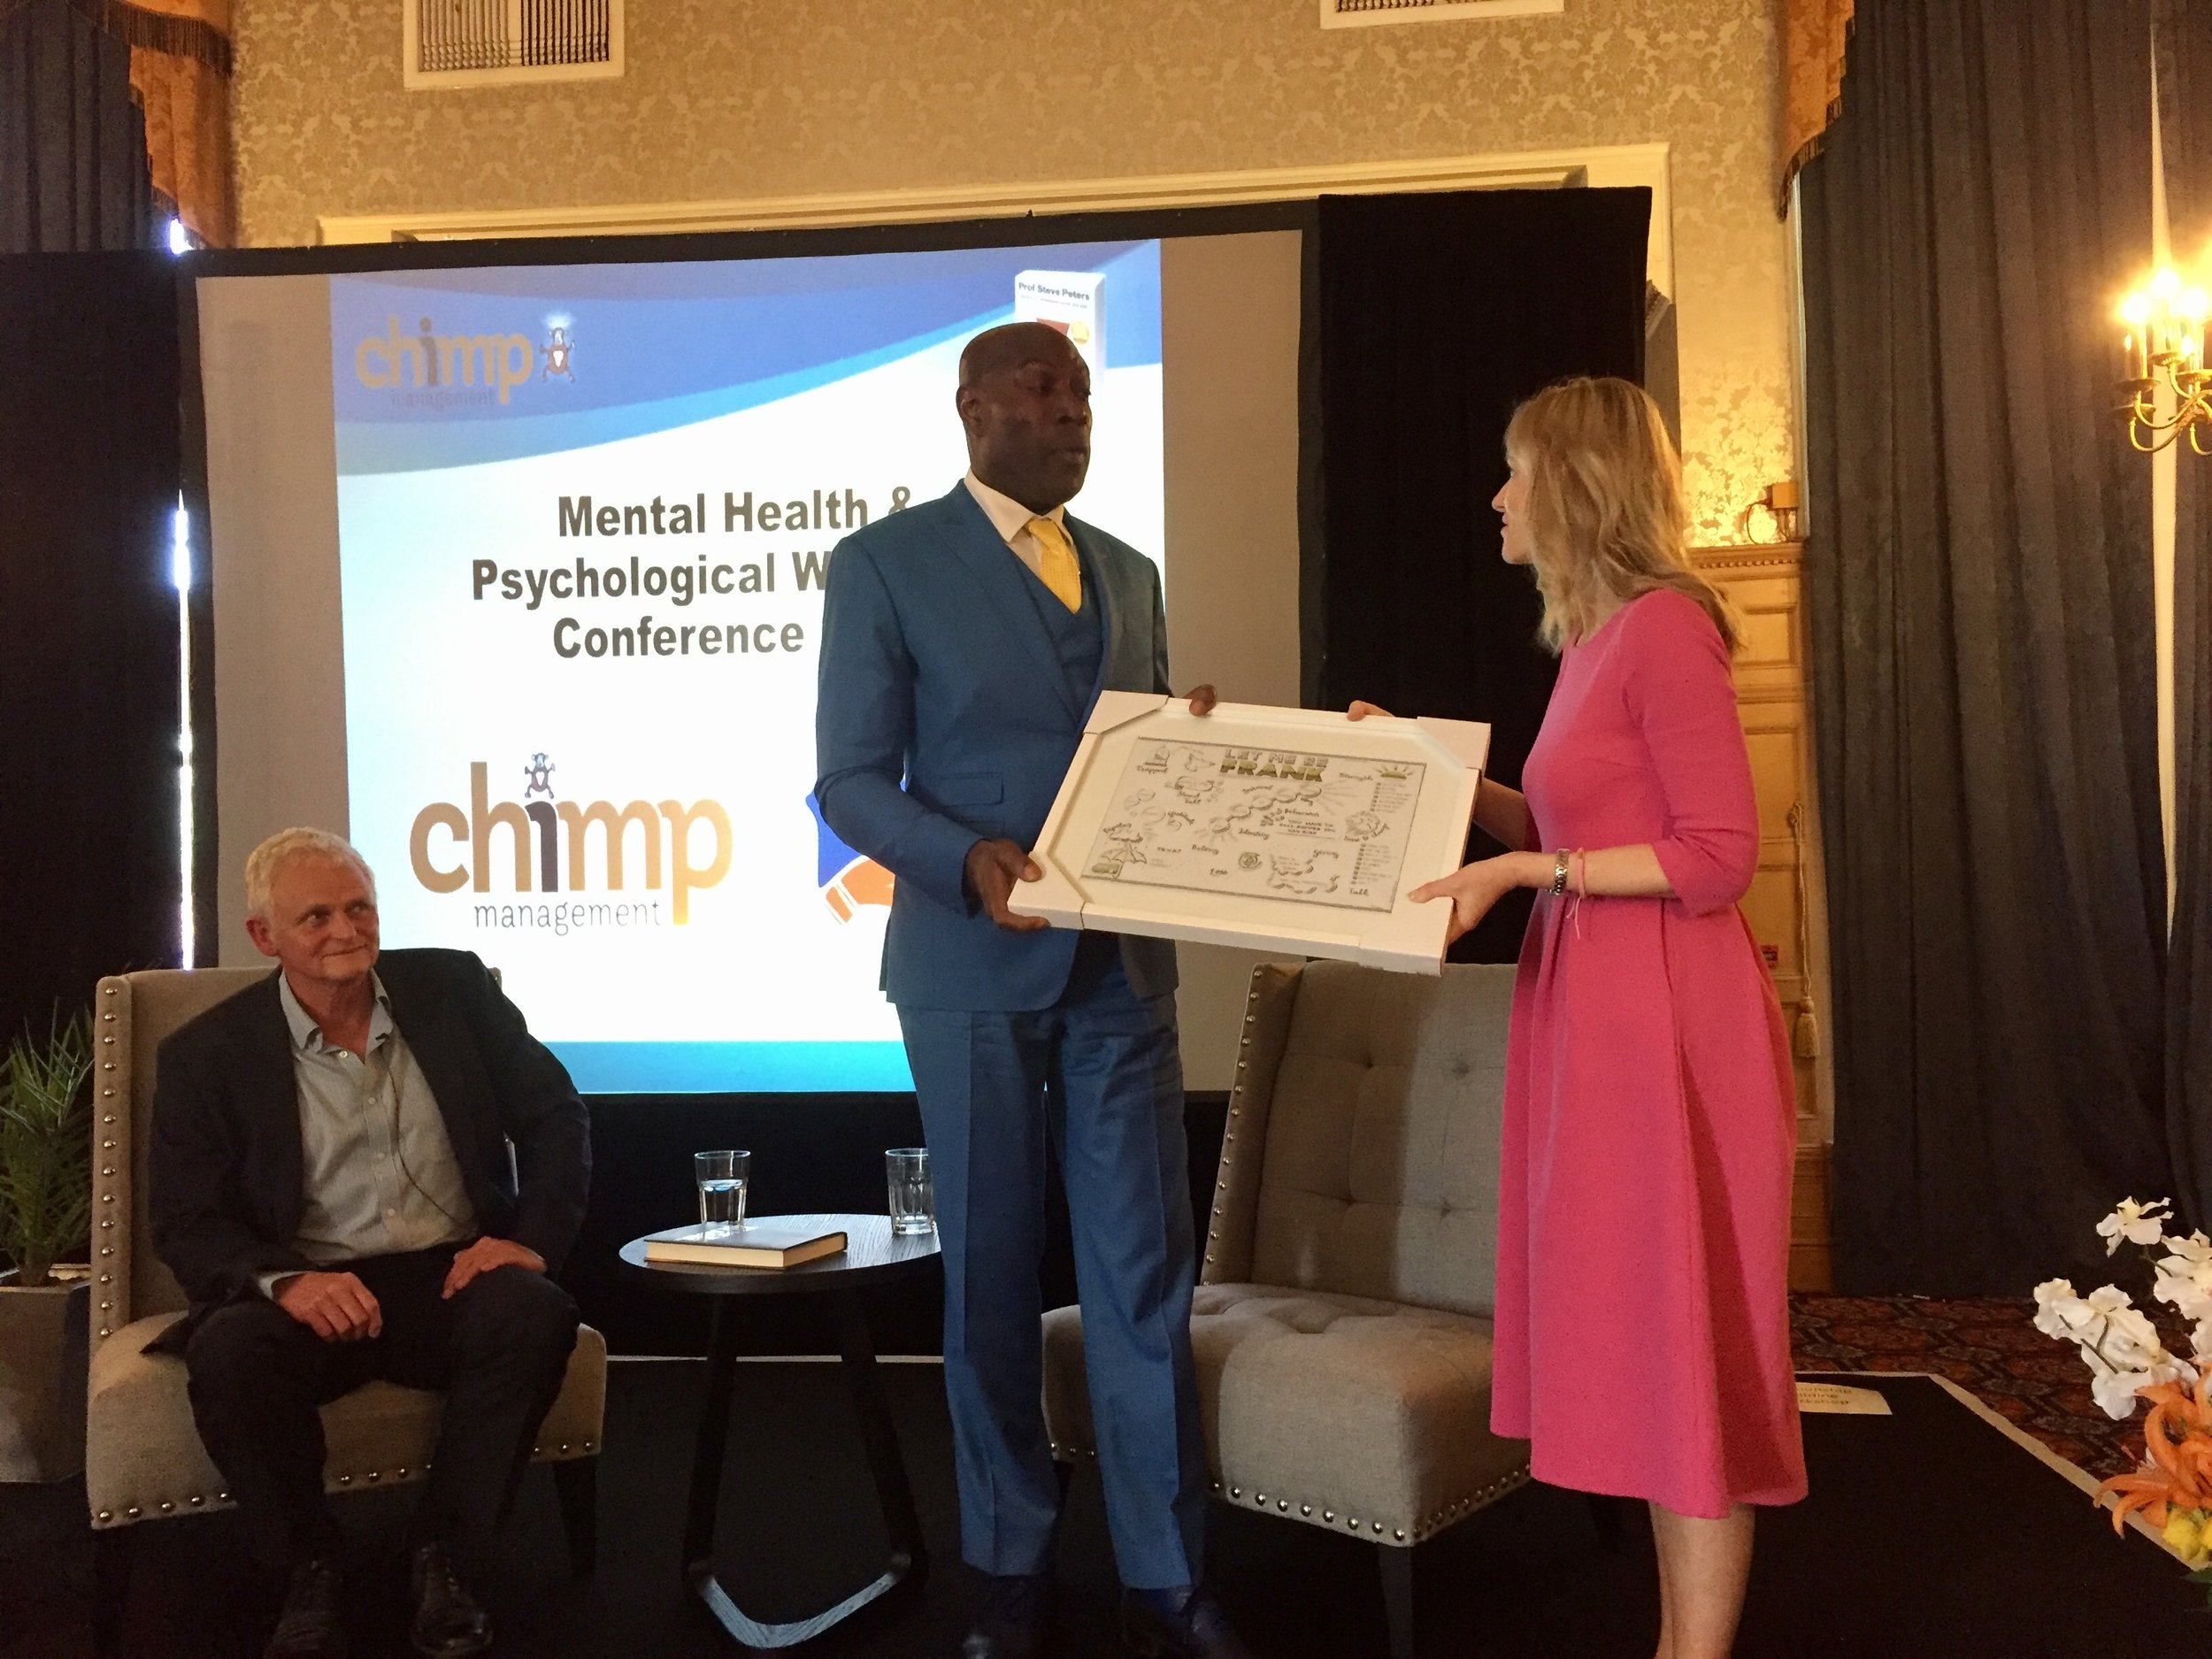 Dani presenting former world heavyweight champion Frank Bruno MBE with a framed VS of his book  Let Me Be Frank  at the Chimp Management Mental Health and Wellbeing Conference. Picture includes Dr Steve Peters, author of  Chimp Paradox